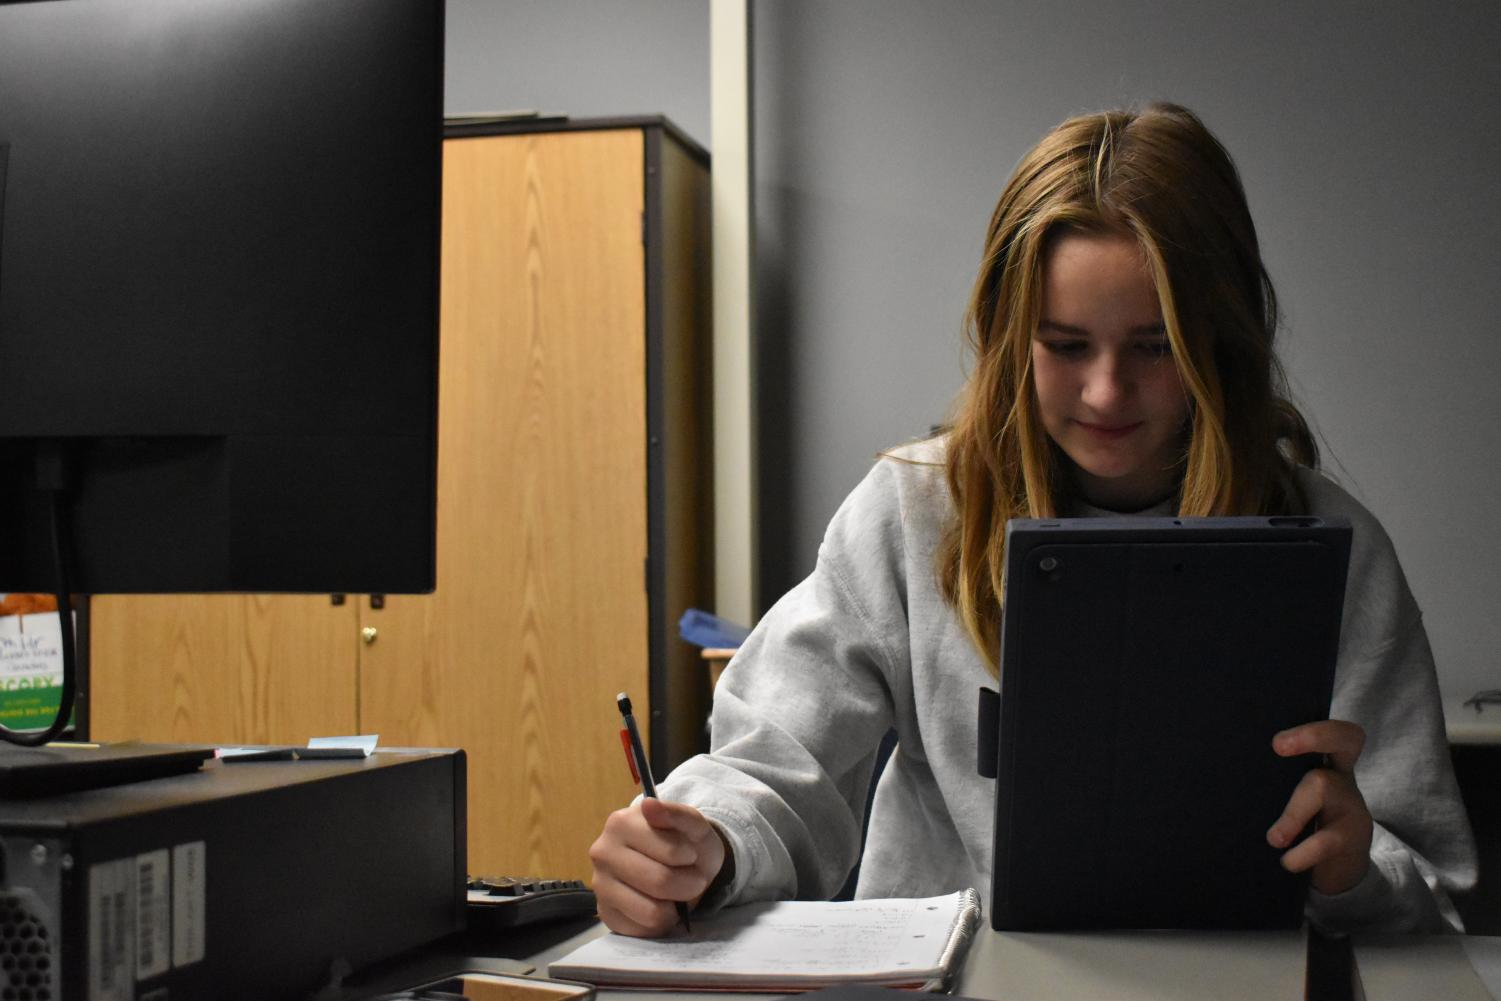 Freshman Ella Koweck works on her iPad given to her by the school.